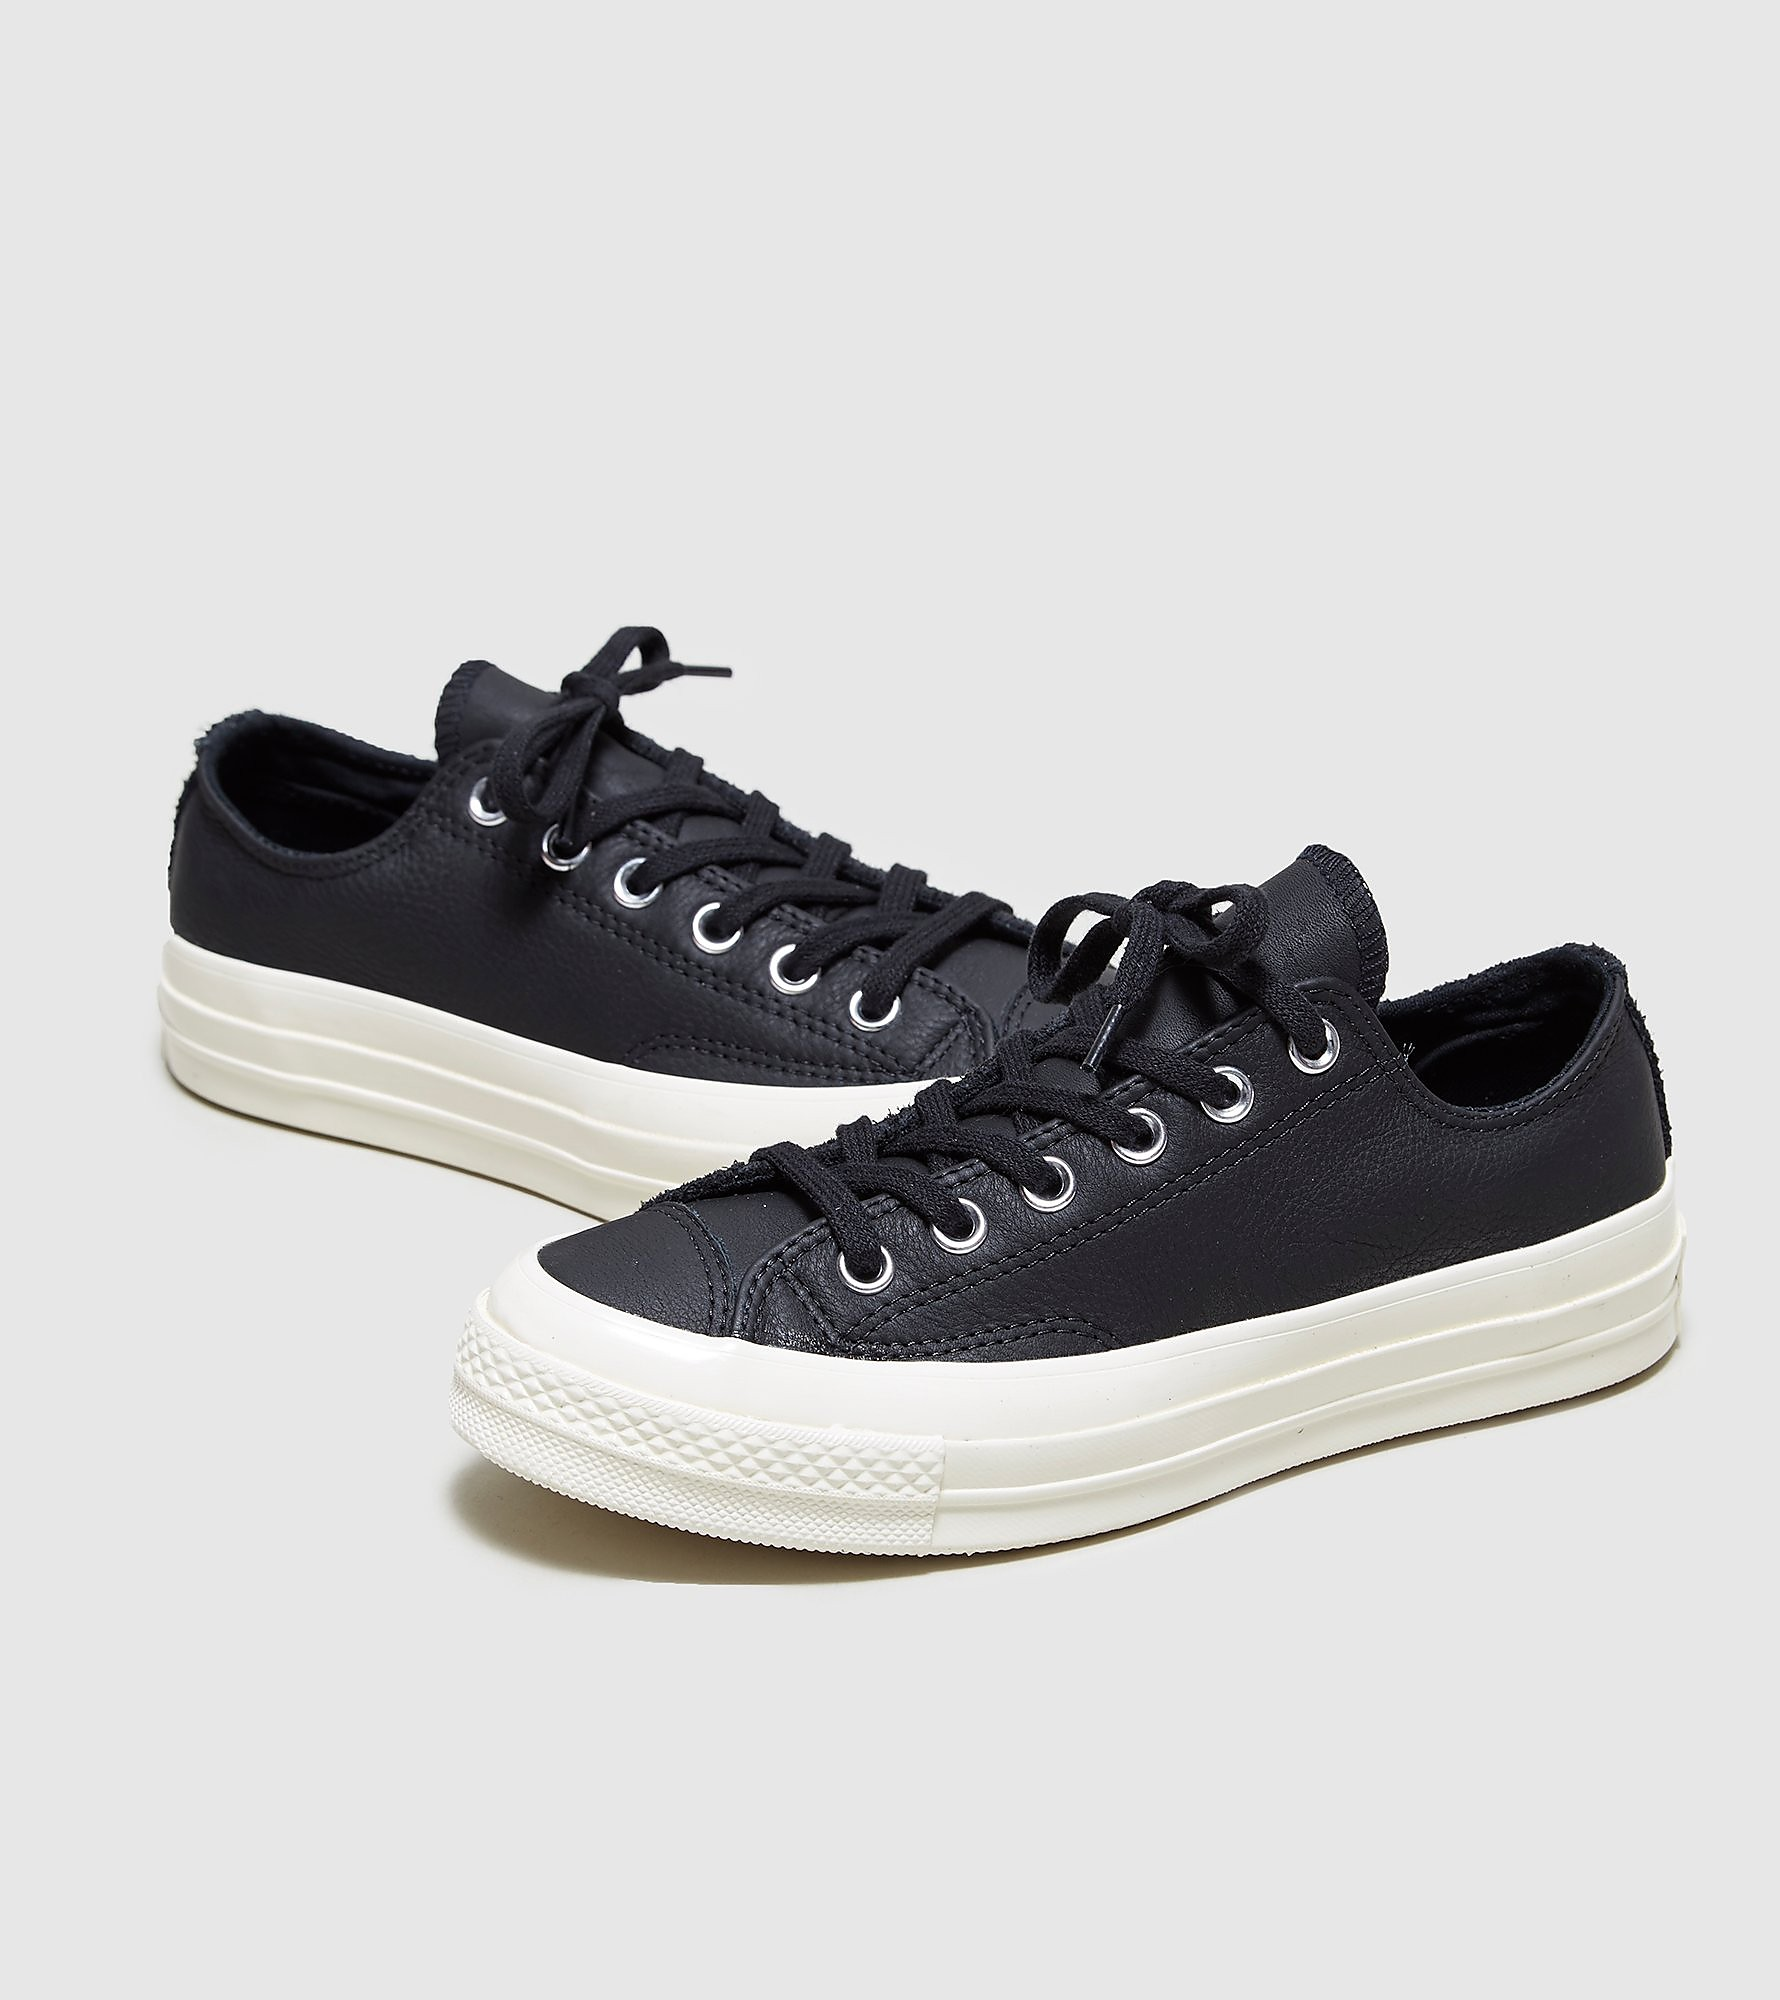 Converse Chuck Taylor All Star '70 Suede OC Women's